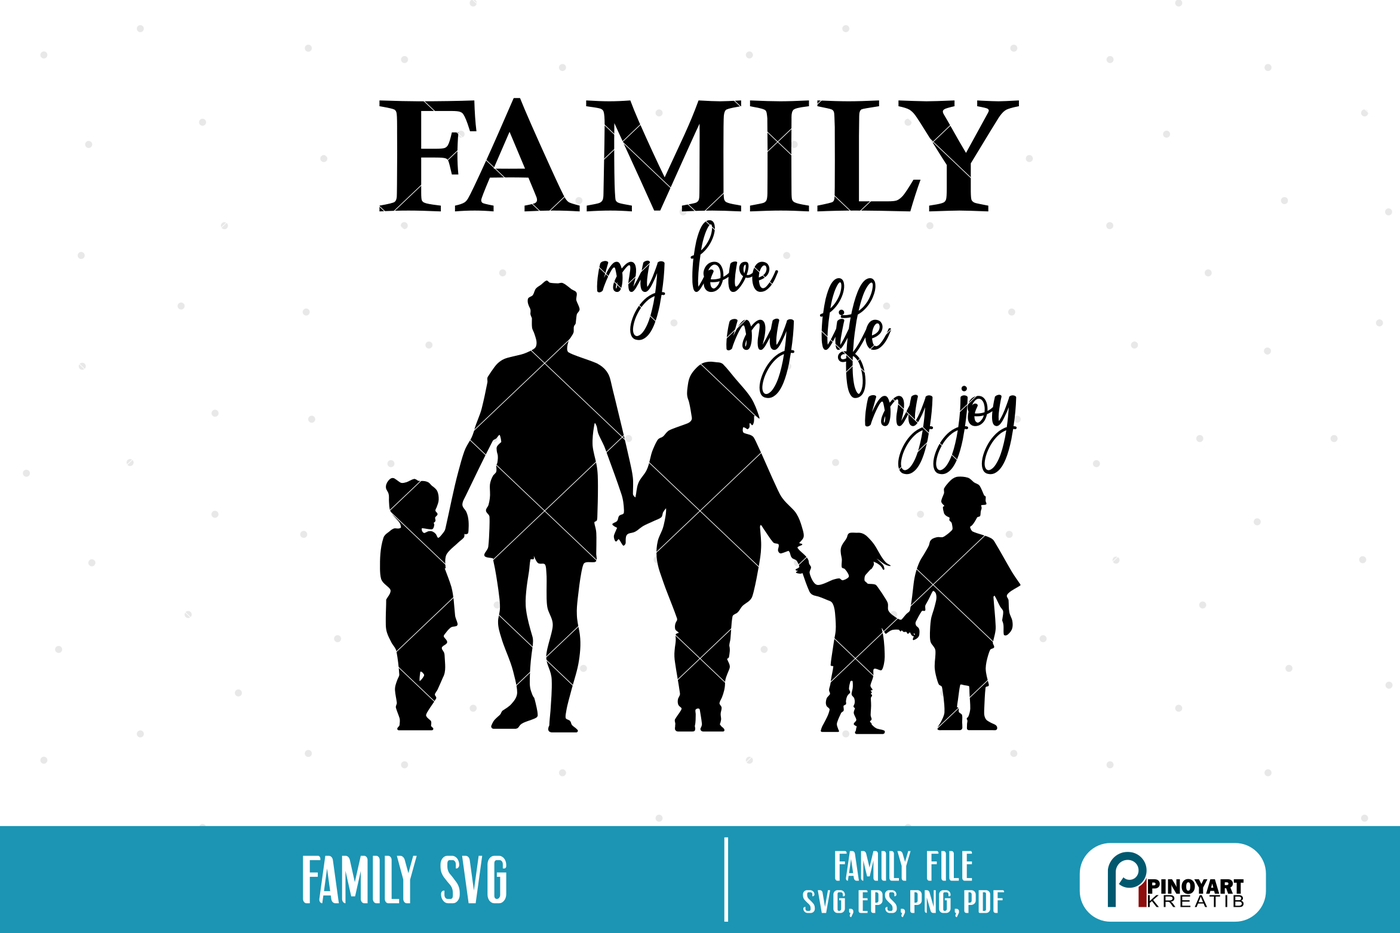 Family Svg Family Svg File Life Svg Joy Svg Love Svg Svg